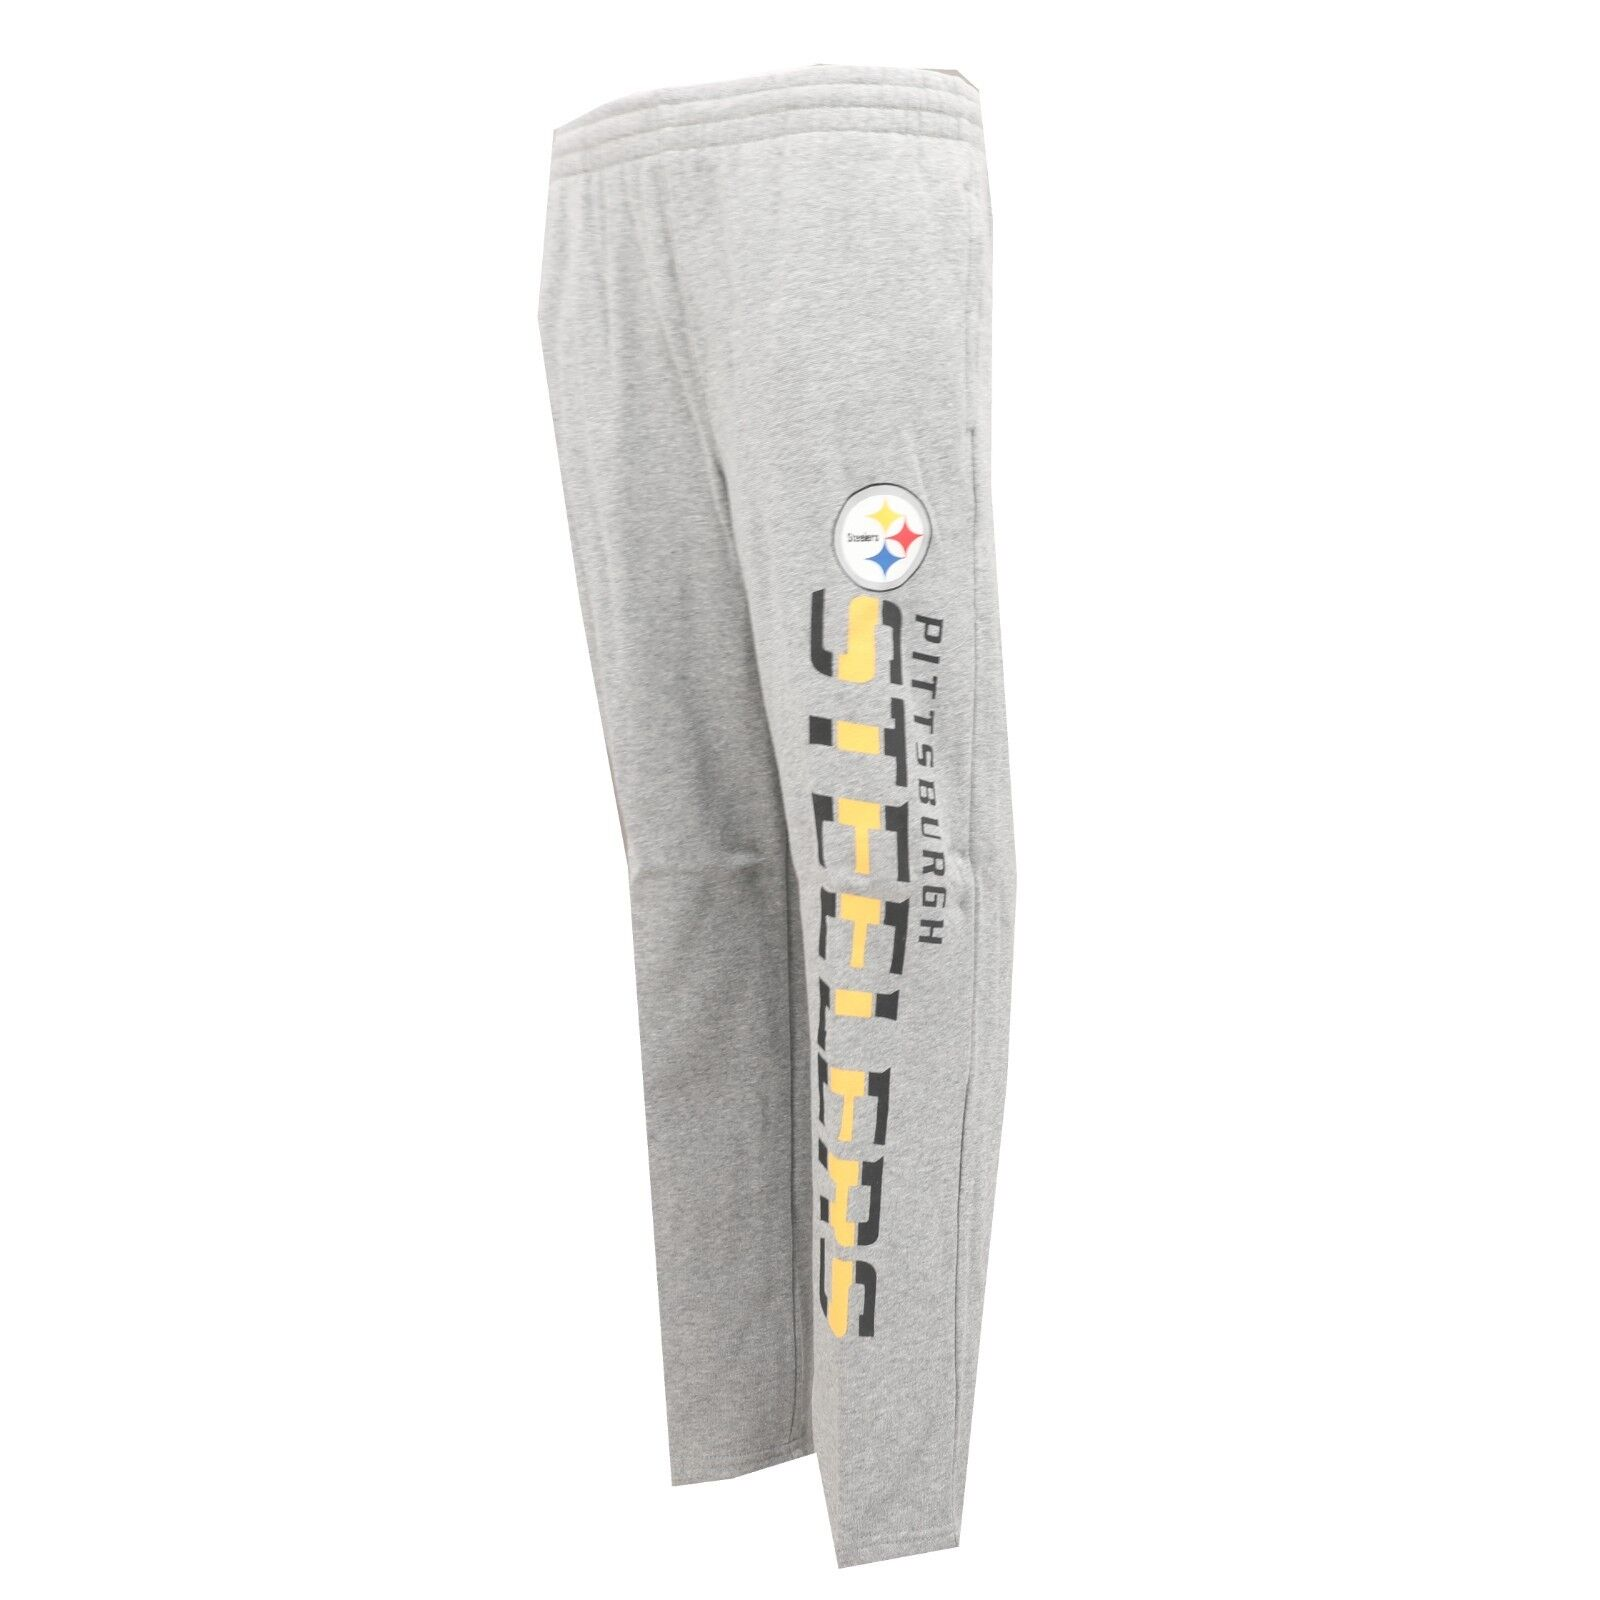 0a7308f2 Details about Pittsburgh Steelers Official NFL Apparel Kids Youth Size  Sweatpants New Tags